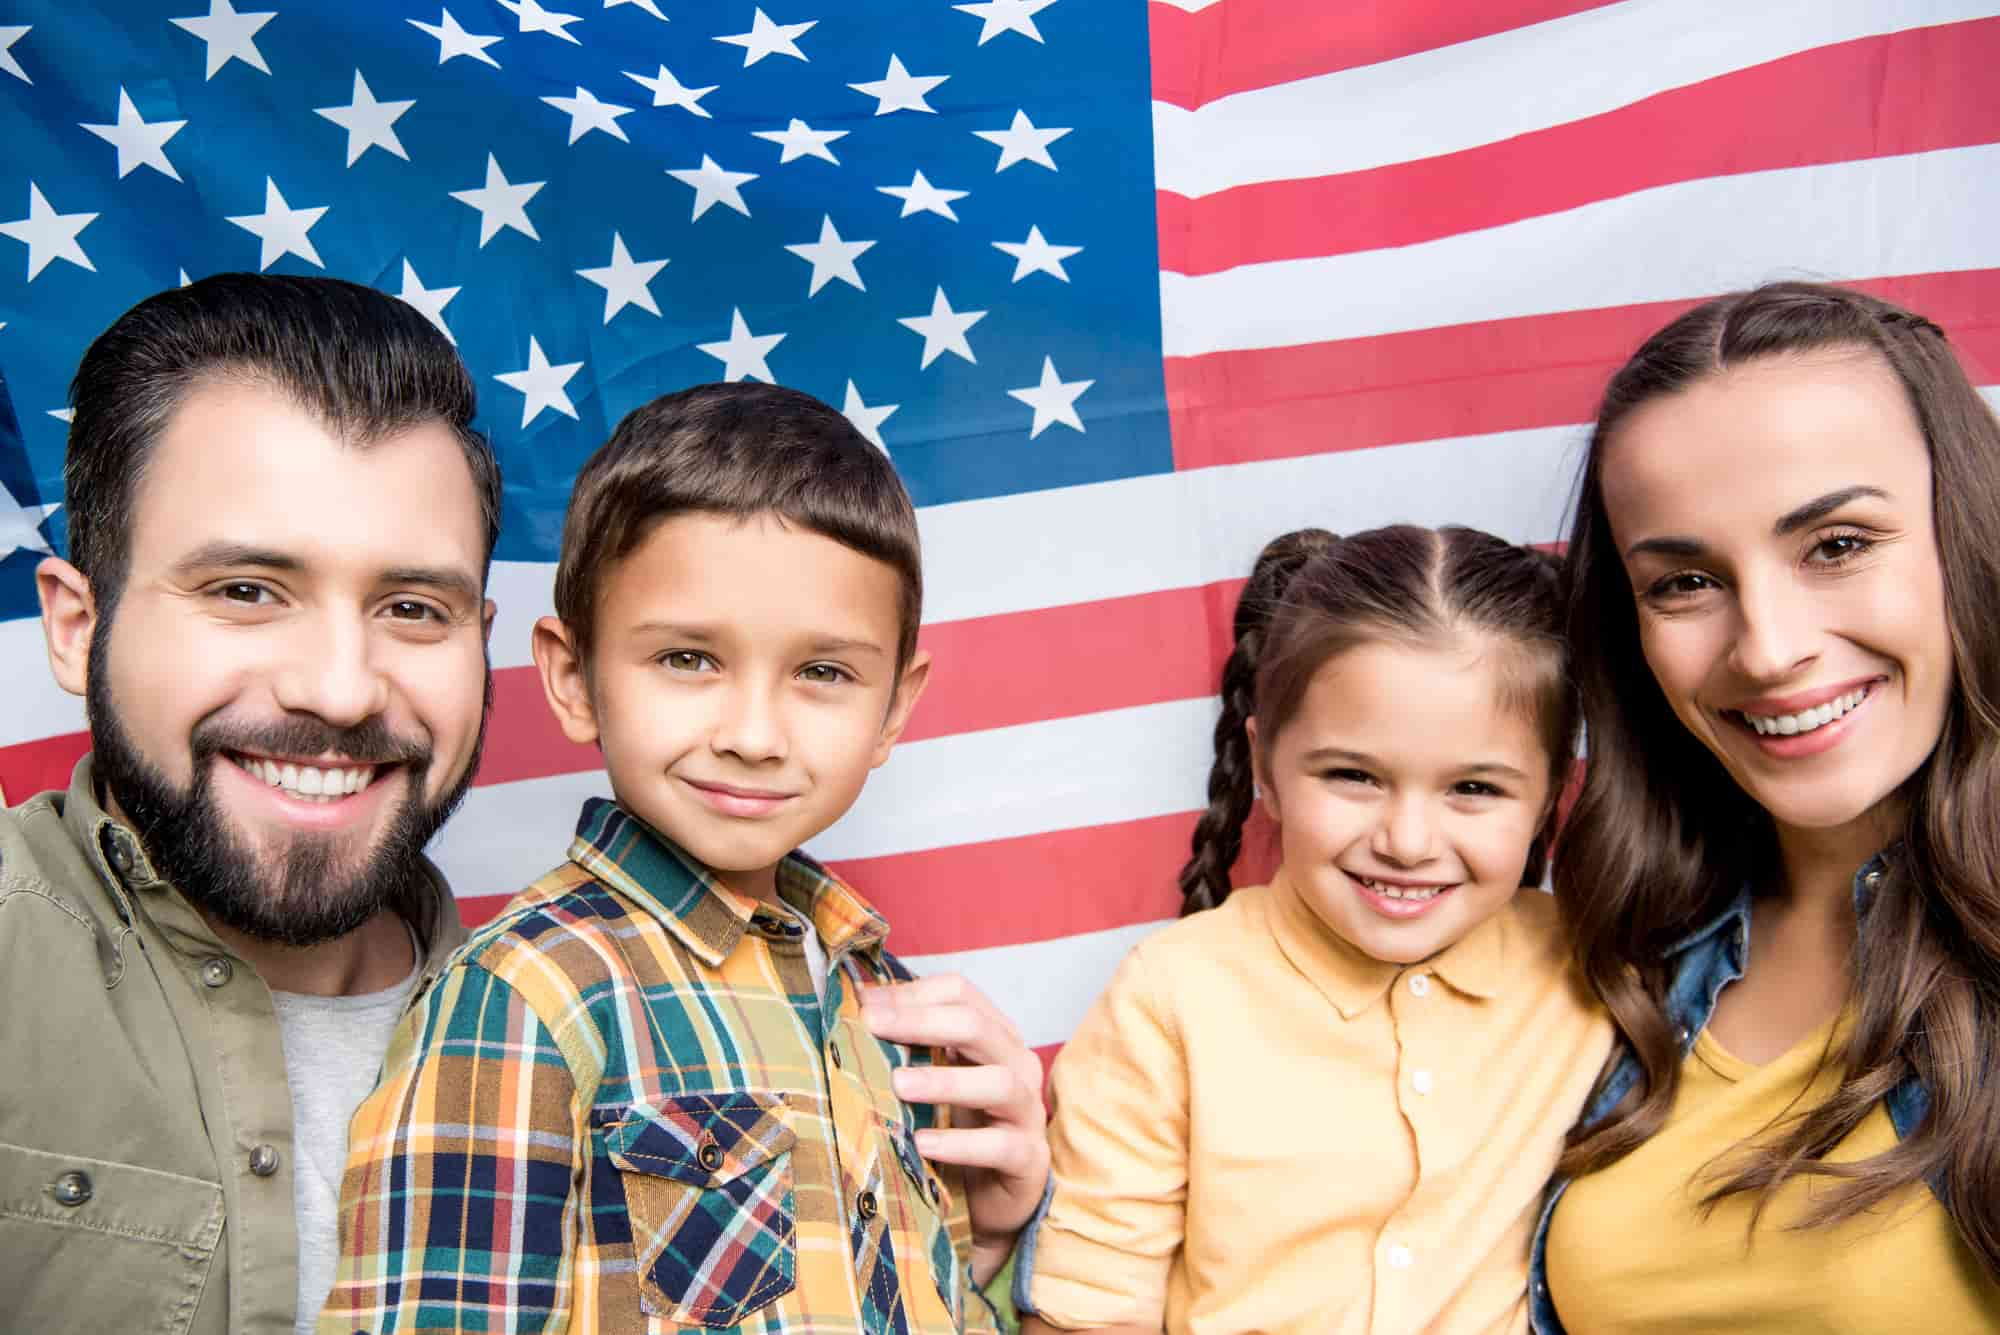 L 1 Visa – Your Gateway to settle in America